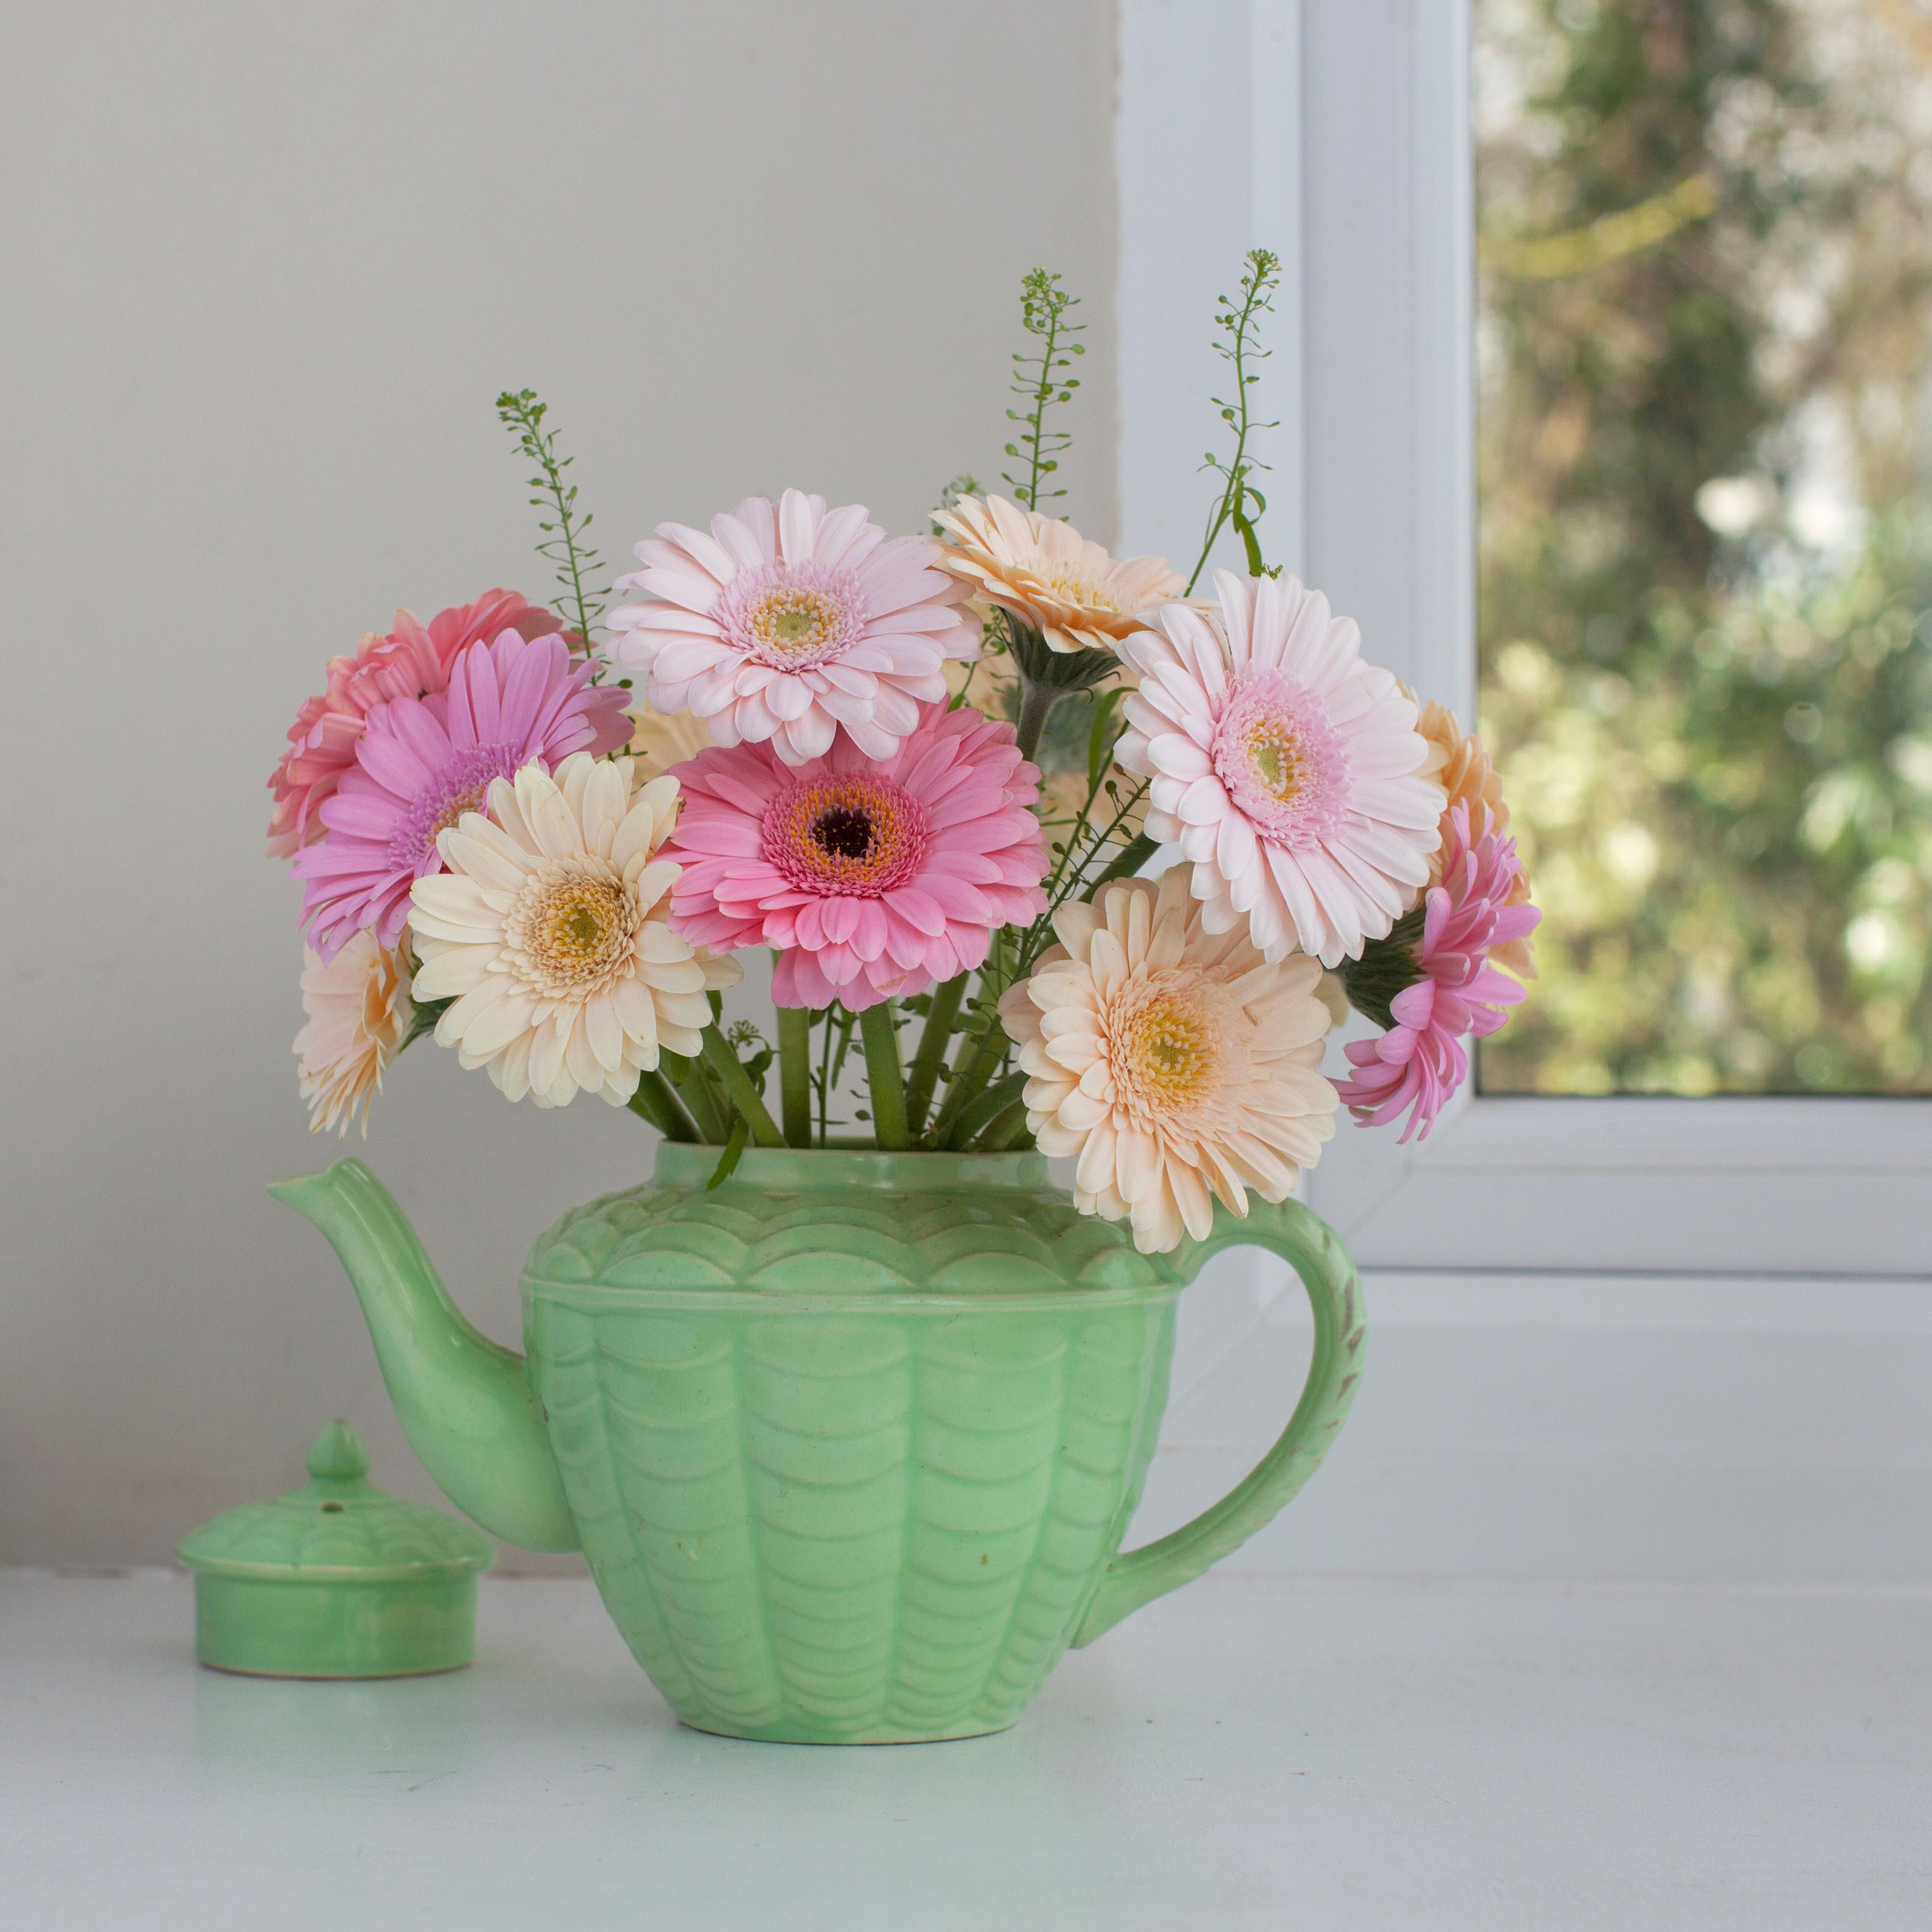 tall skinny vases with flowers of growing gerber daisies yourself intended for gerberadaisy twenty20 70b37b1a e91b 4687 8bf7 5ef6e768f937 58e63fc15f9b58ef7e7ff4f9